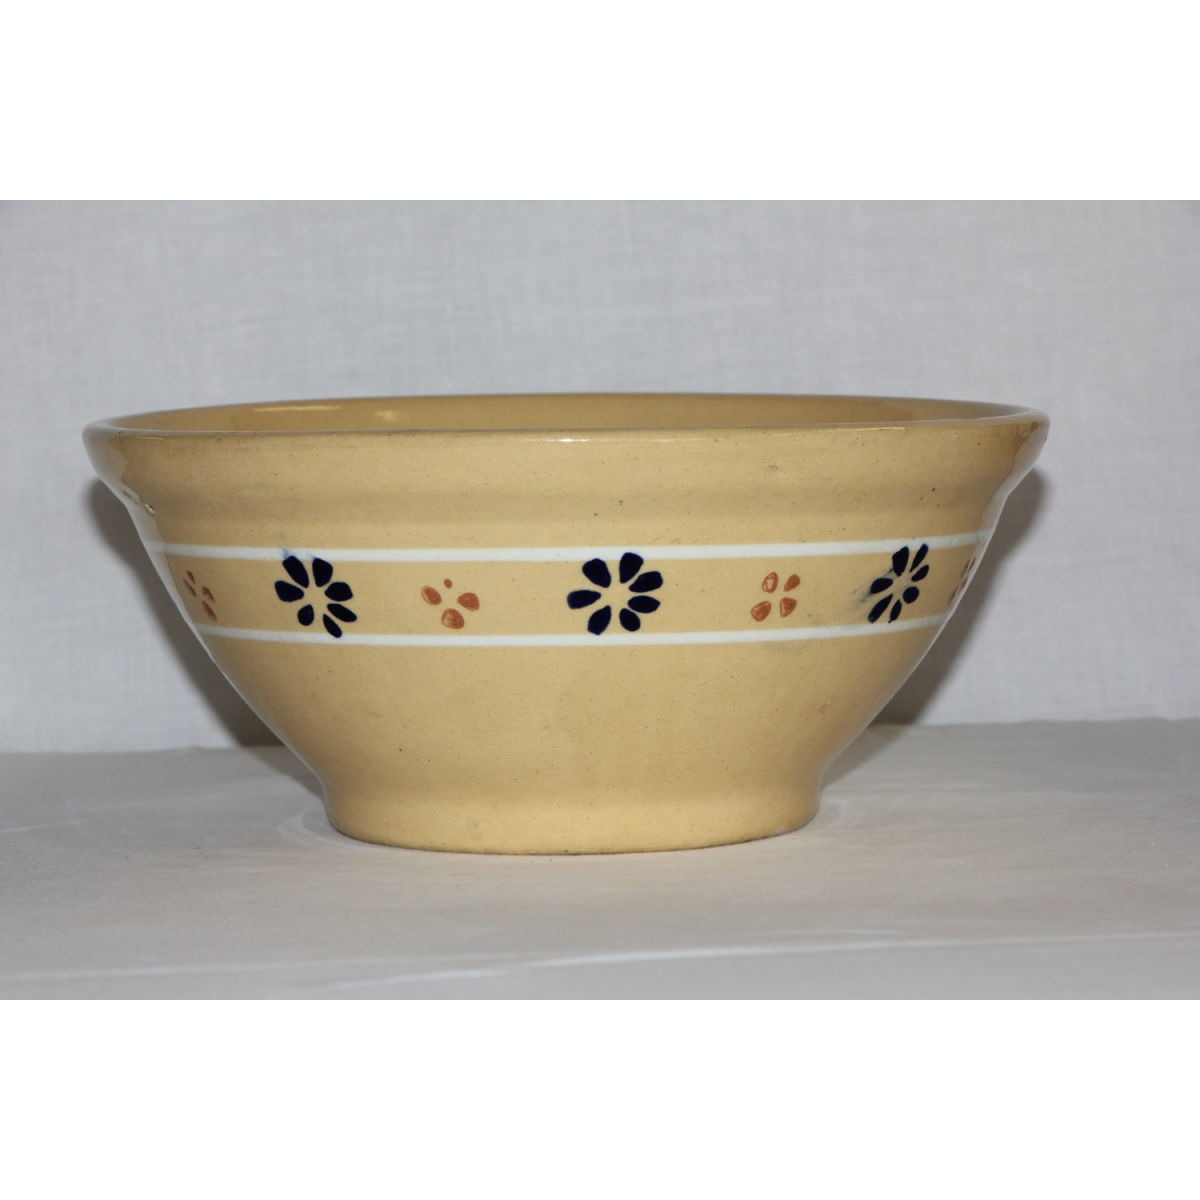 Unusual Slip Dot Flower Decorated Yellowware Bowl